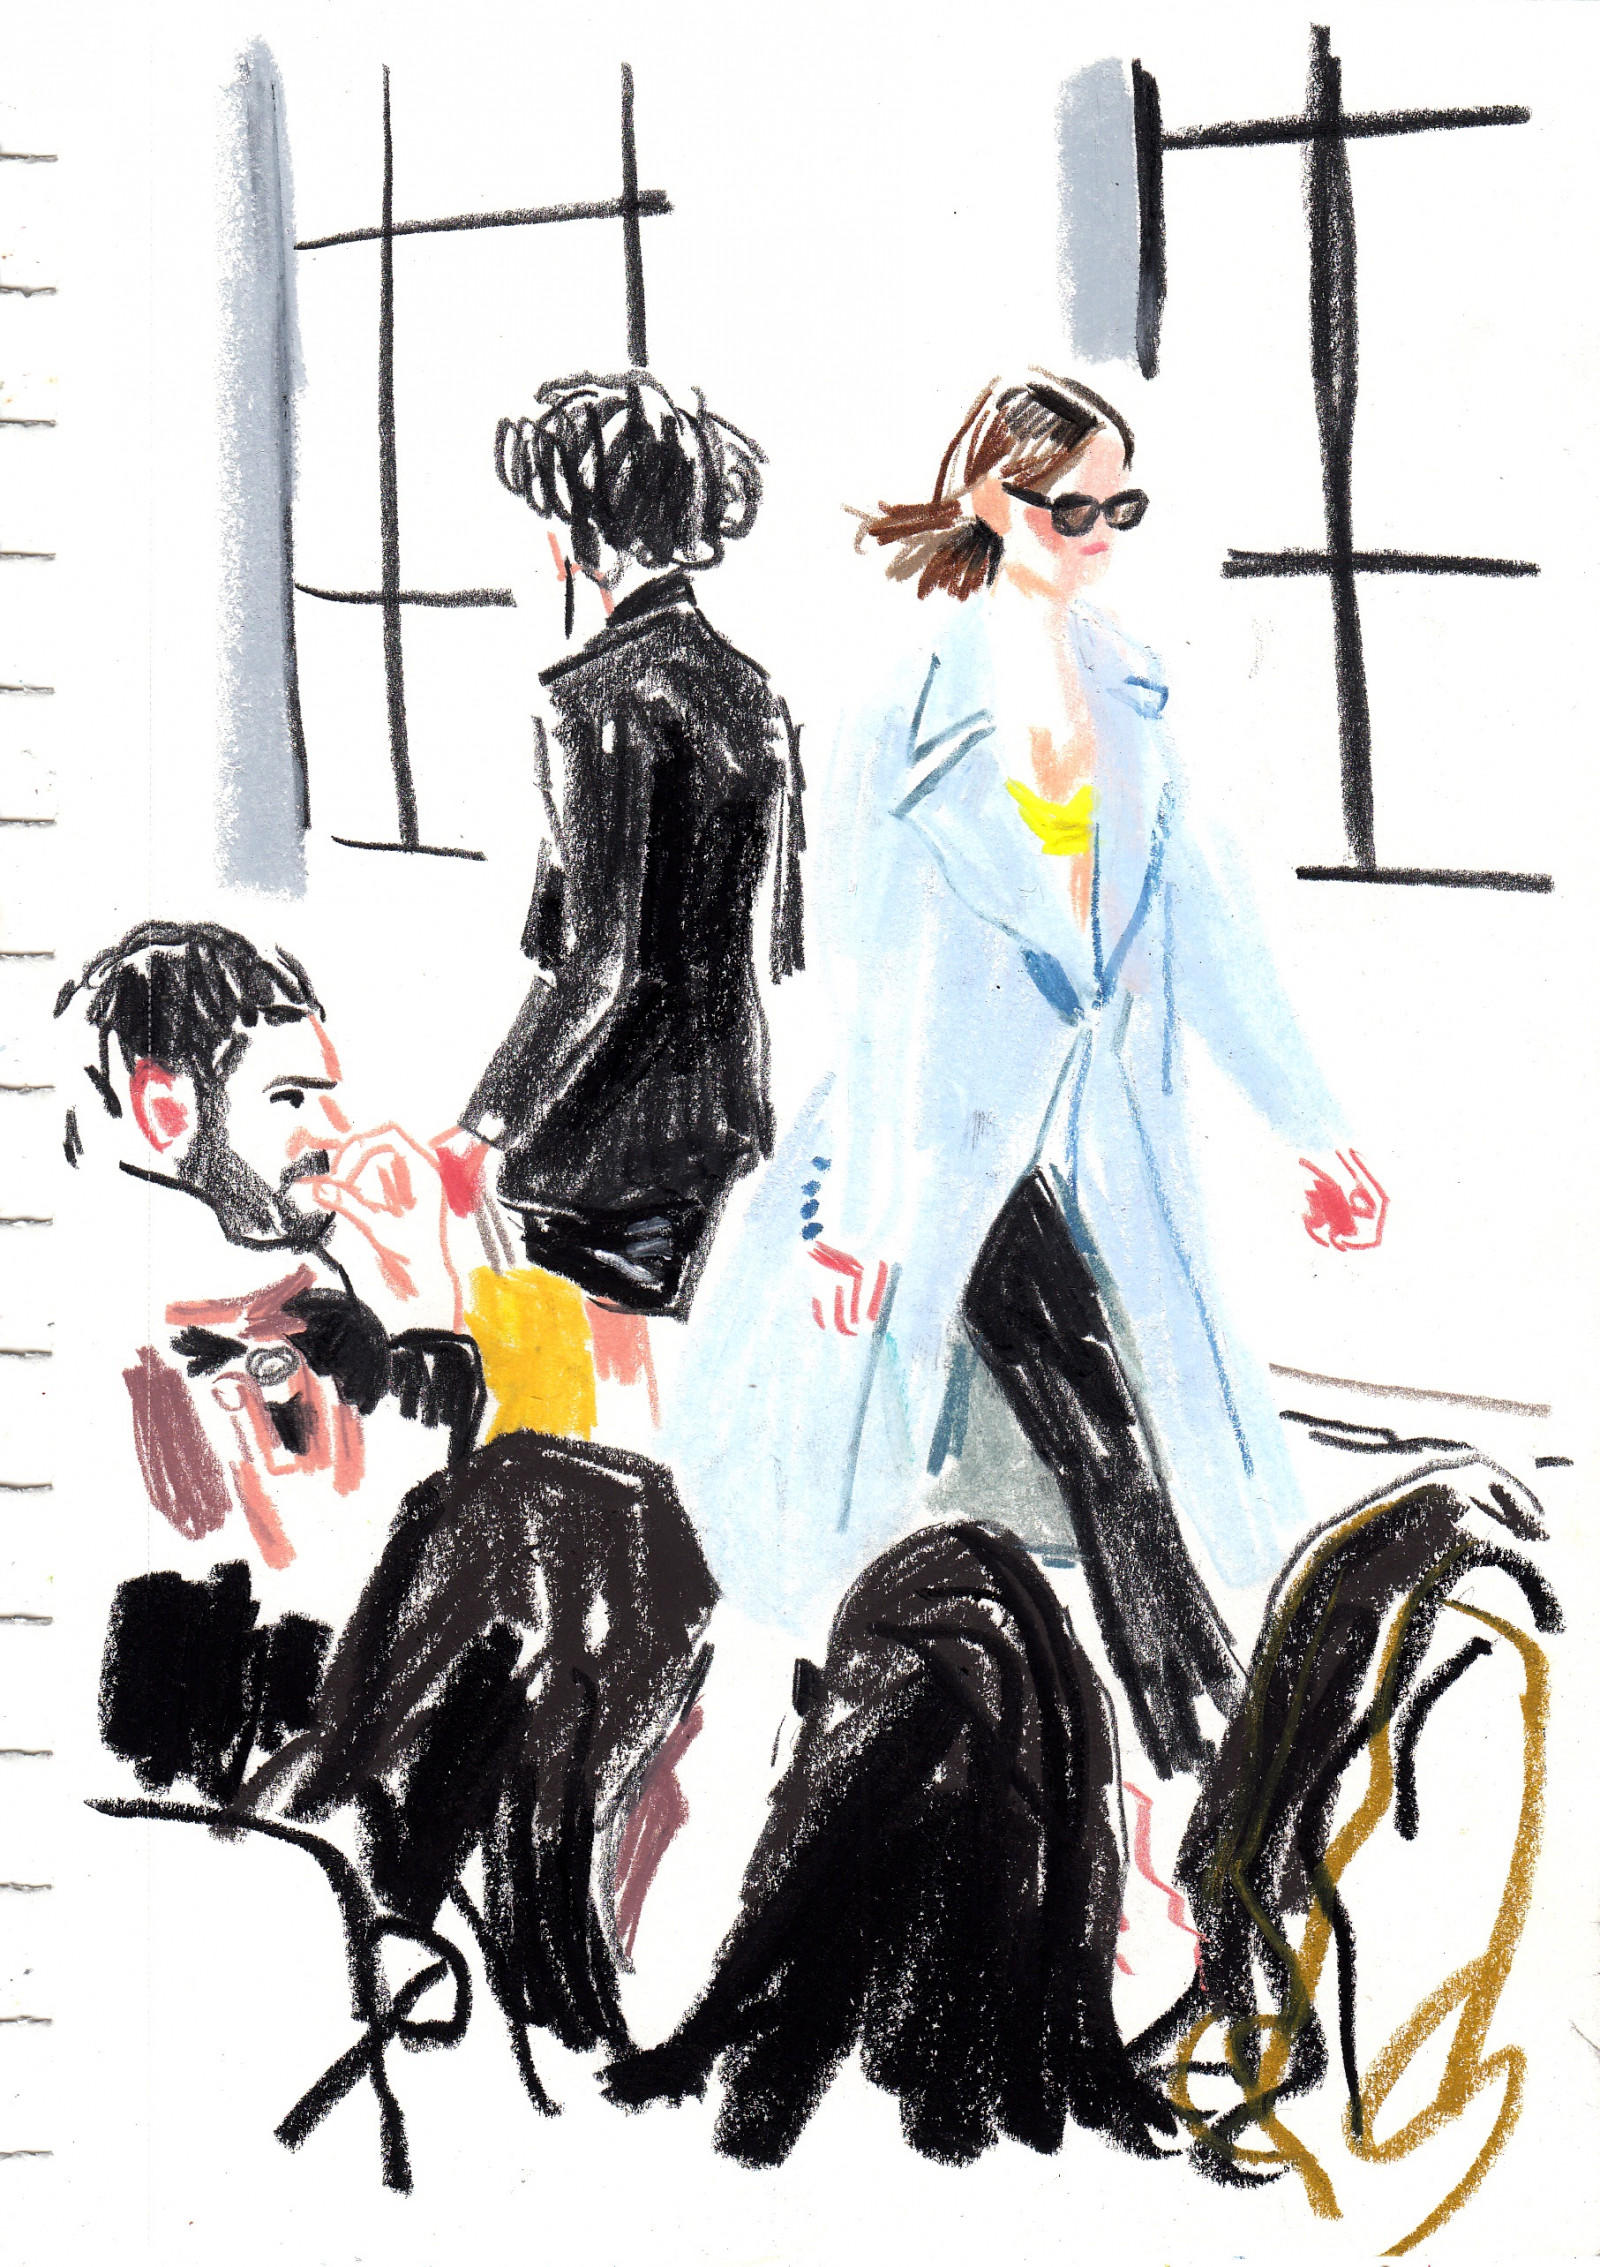 Paris Fashion Week 2 by Damien Florébert CUYPERS